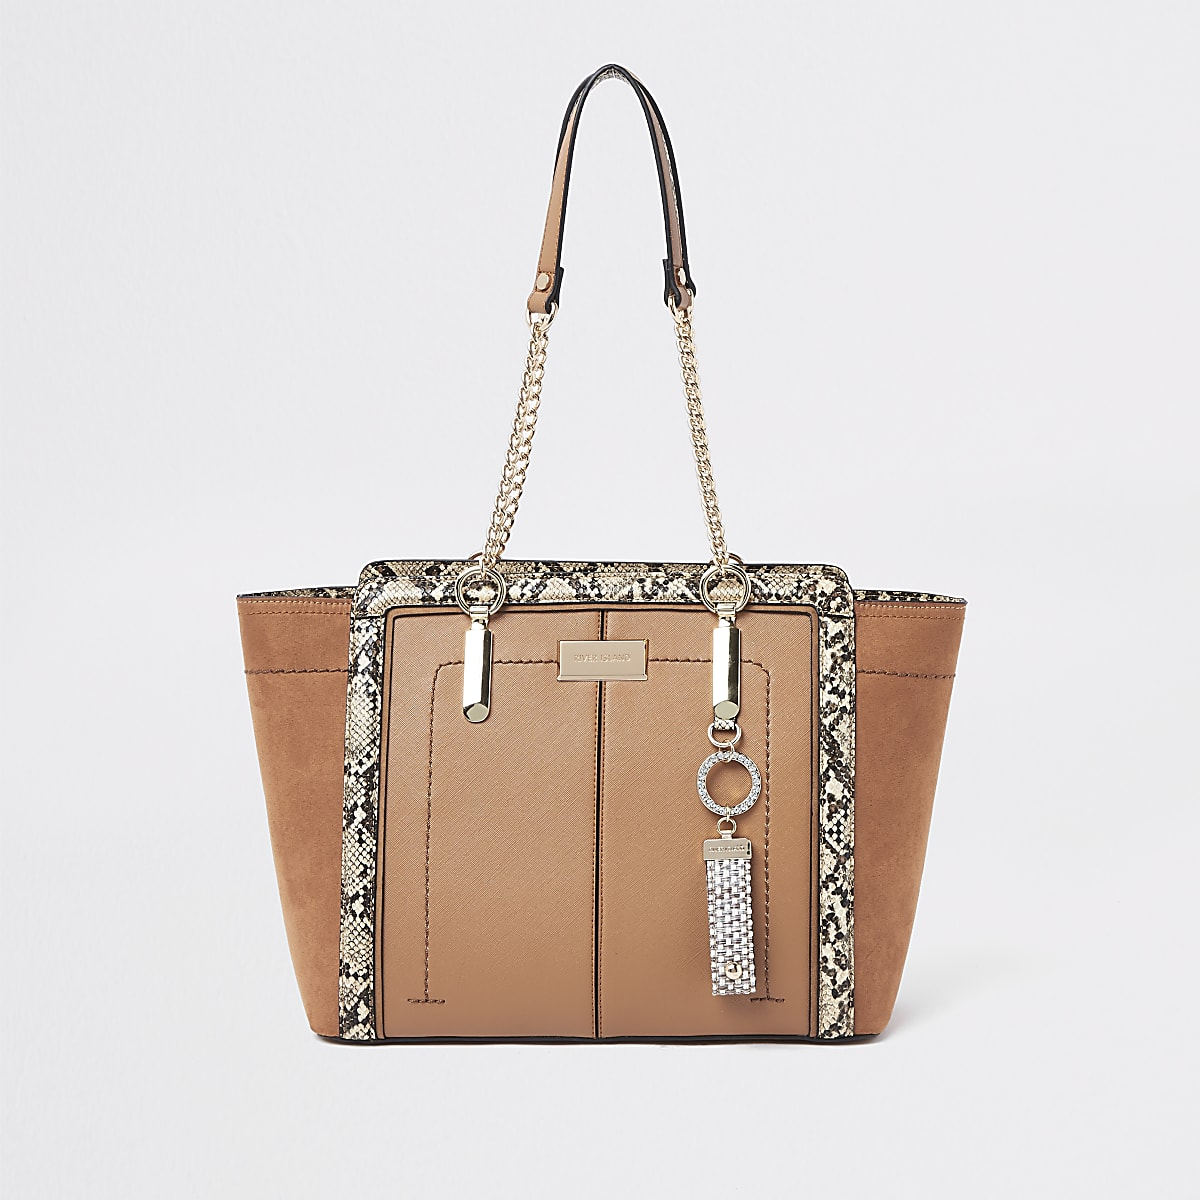 Light brown winged chain handle tote bag